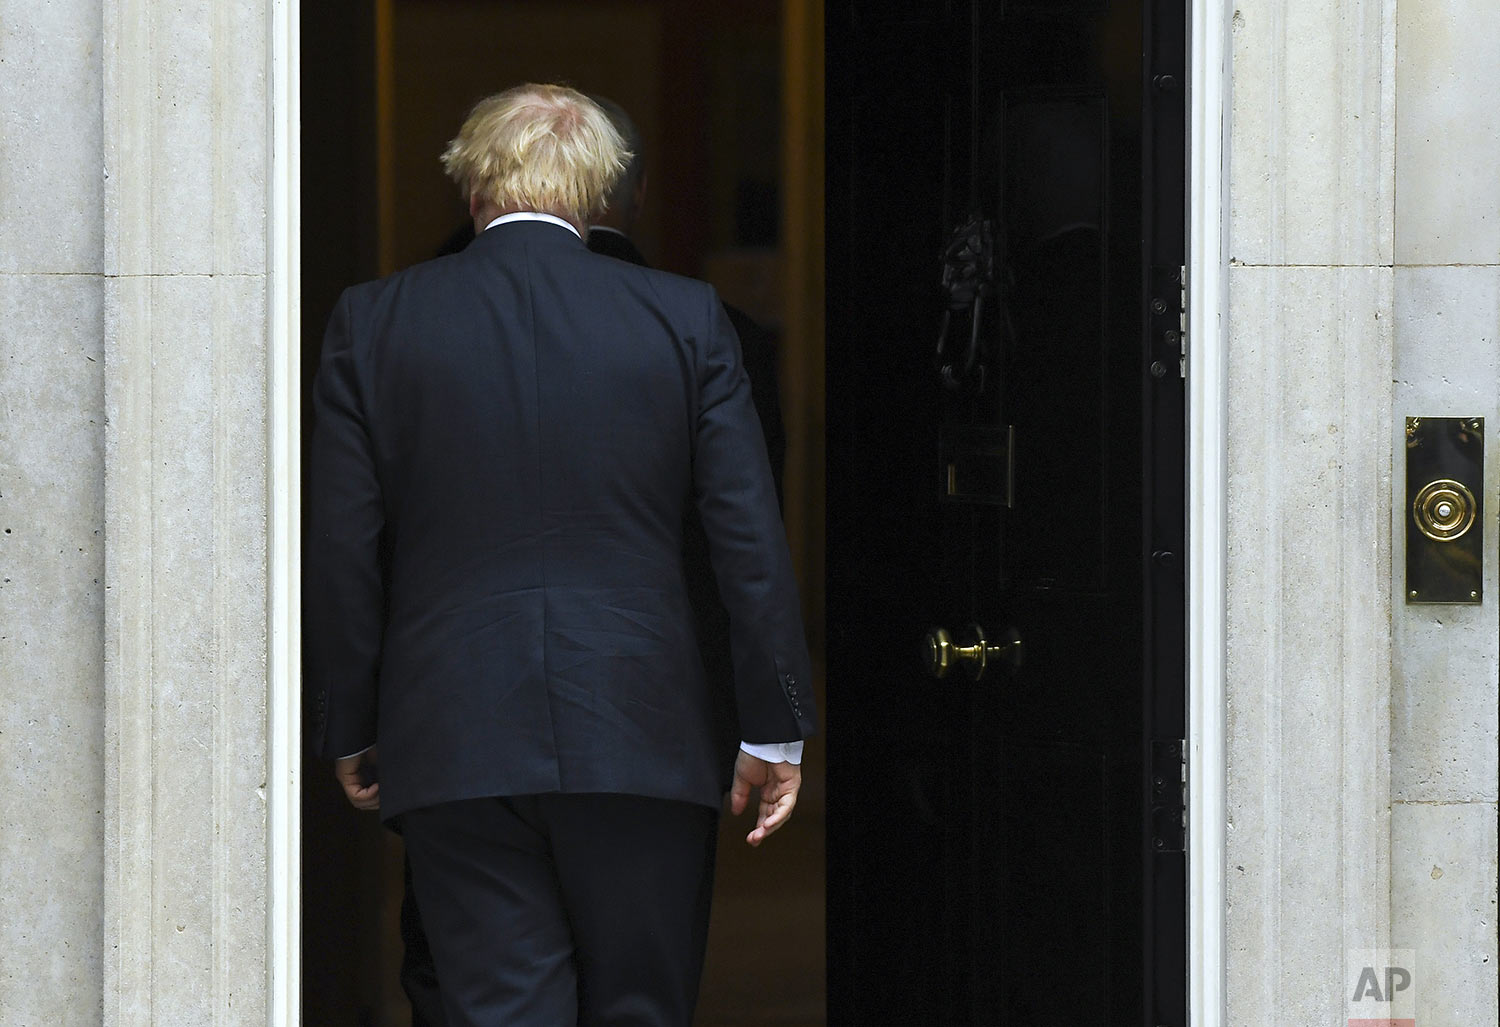 Britain's Prime Minister Boris Johnson walks back into 10 Downing Street after greeting U.S. Vice President Mike Pence  in London, Thursday, Sept. 5, 2019. Boxed in by opponents and abandoned politically even by his own brother, Johnson struggled Thursday to keep his Brexit plans on track. (AP Photo/Alberto Pezzali)